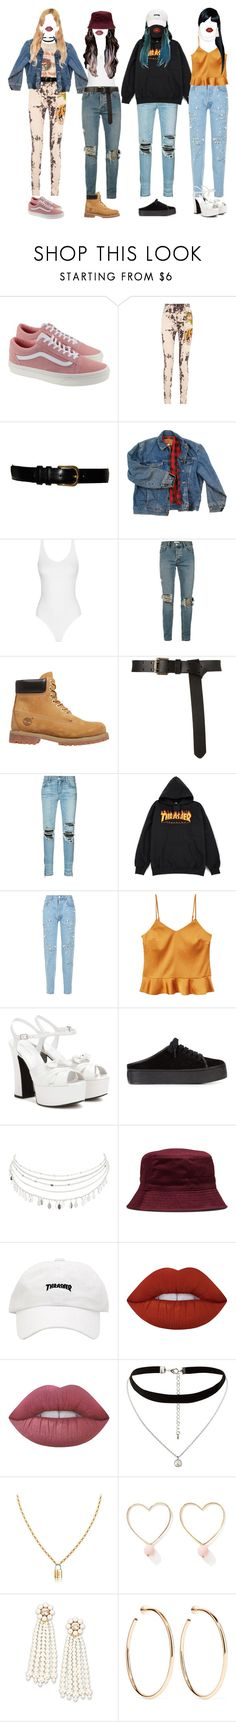 """""""- lazy fashion"""" by xxzodiacentertainmentxx ❤ liked on Polyvore featuring Vans, Gucci, Yves Saint Laurent, Wrangler, Topman, Timberland, AMIRI, Forte Couture, MANGO and Opening Ceremony"""